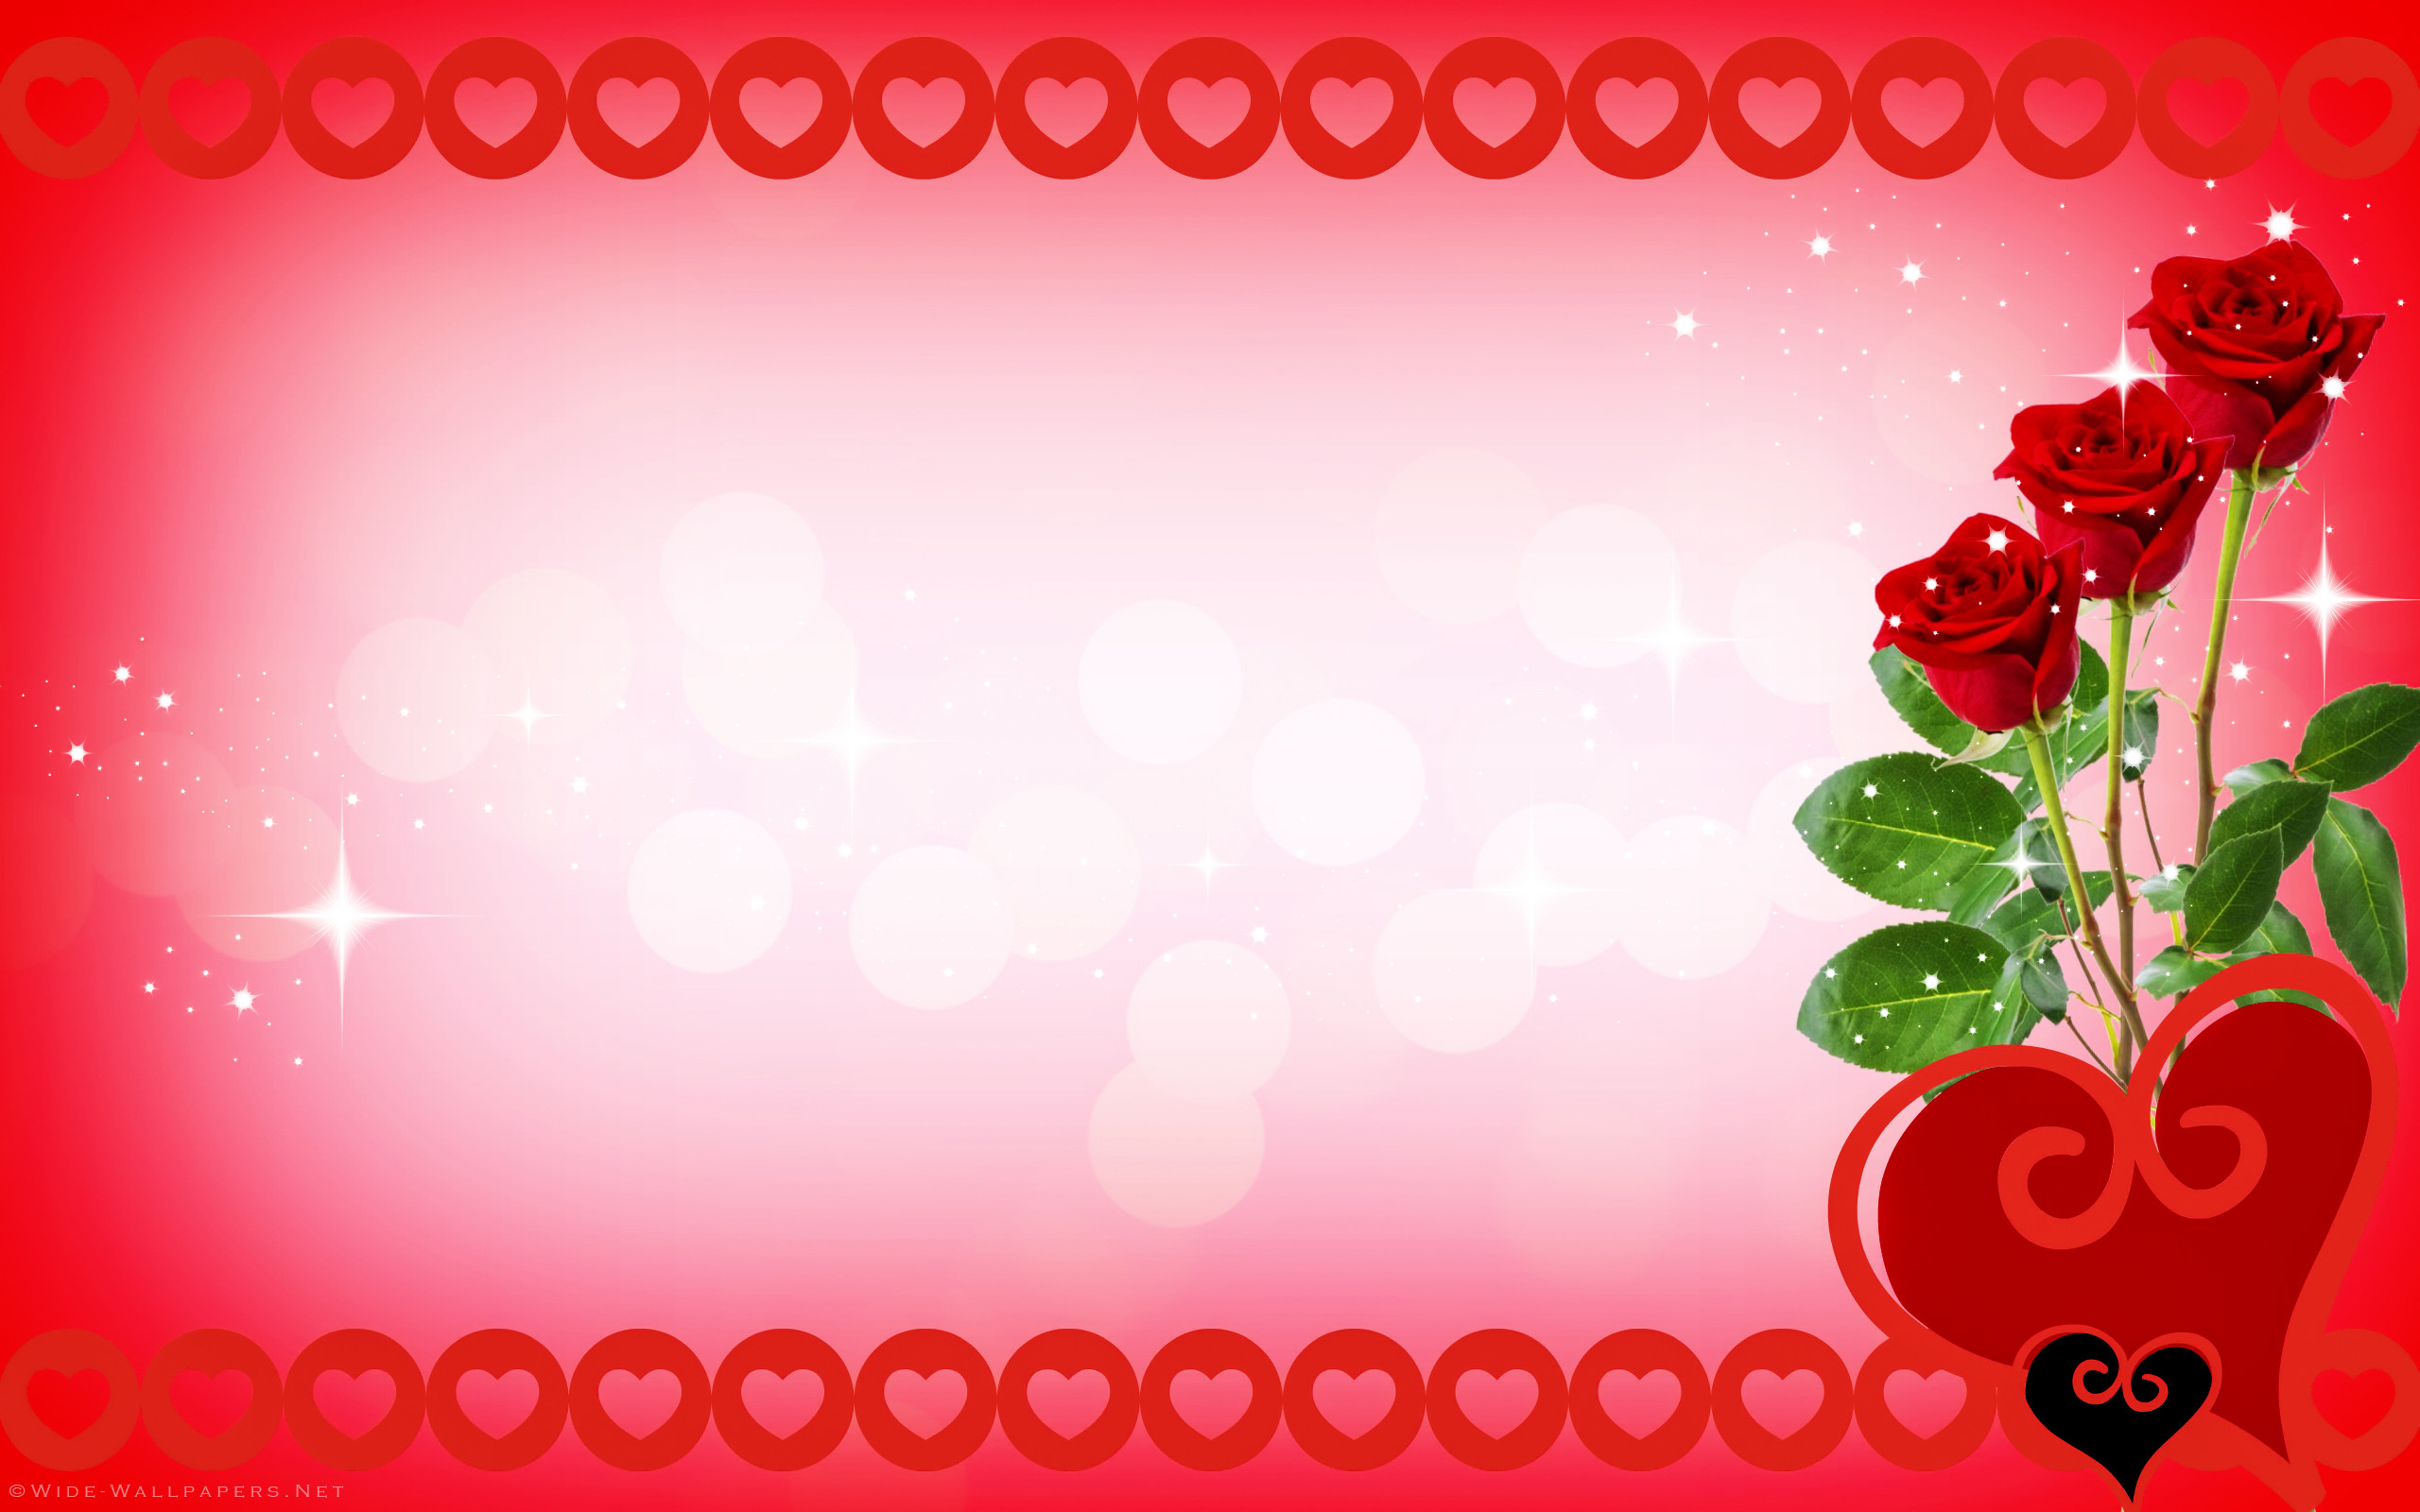 2560x1600, Valentine Hearts Wallpaper Valentines Day - Backgrounds With Rose & Hearts - HD Wallpaper